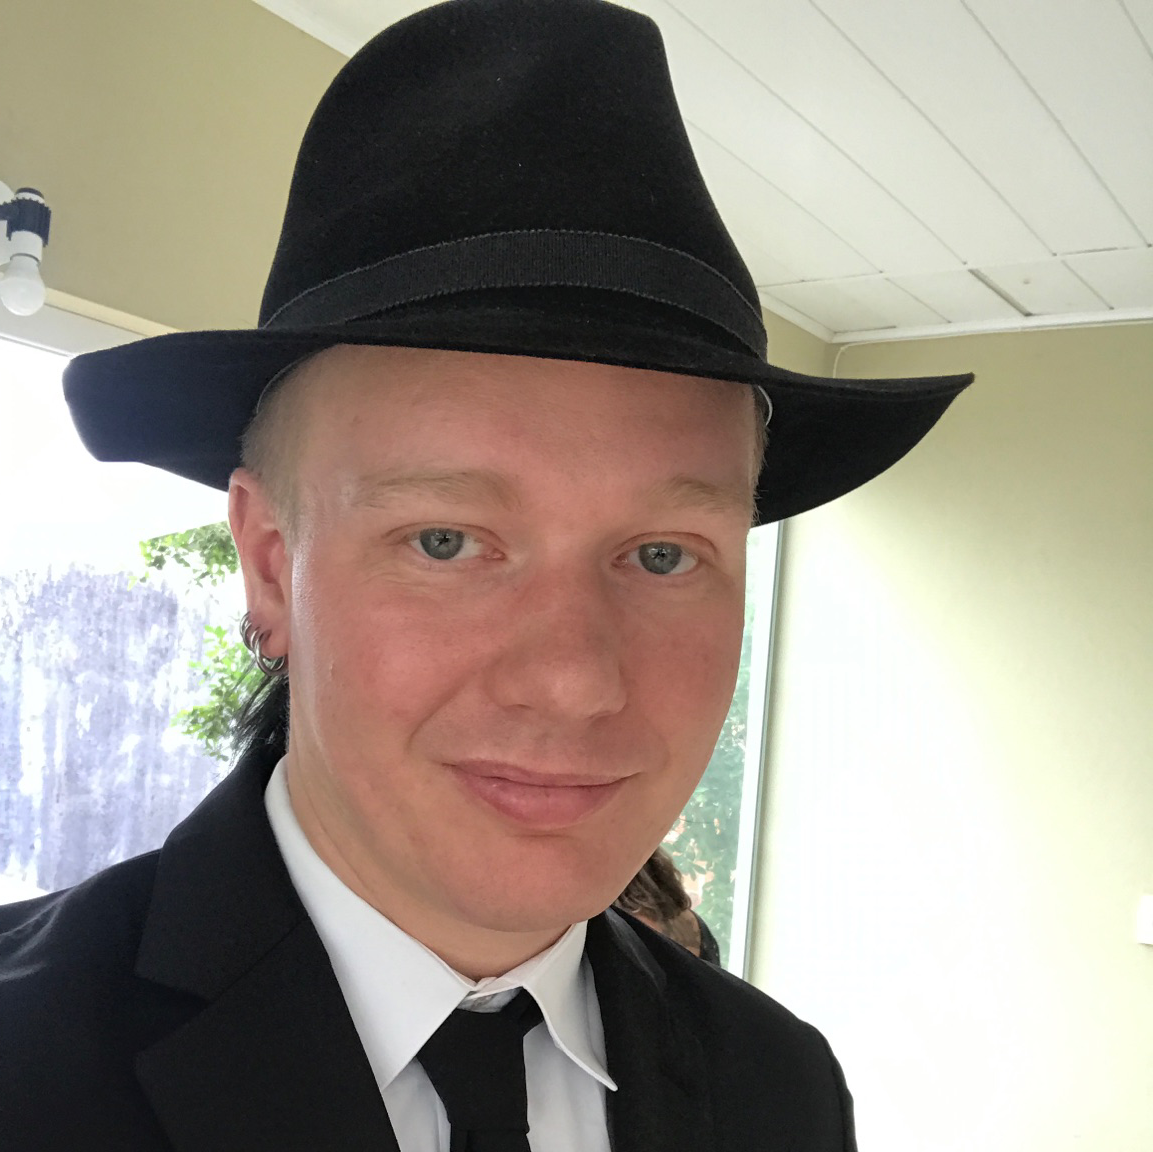 A picture of ola bini. The picture shows a young man in a suit and tie, wearing a black hat.